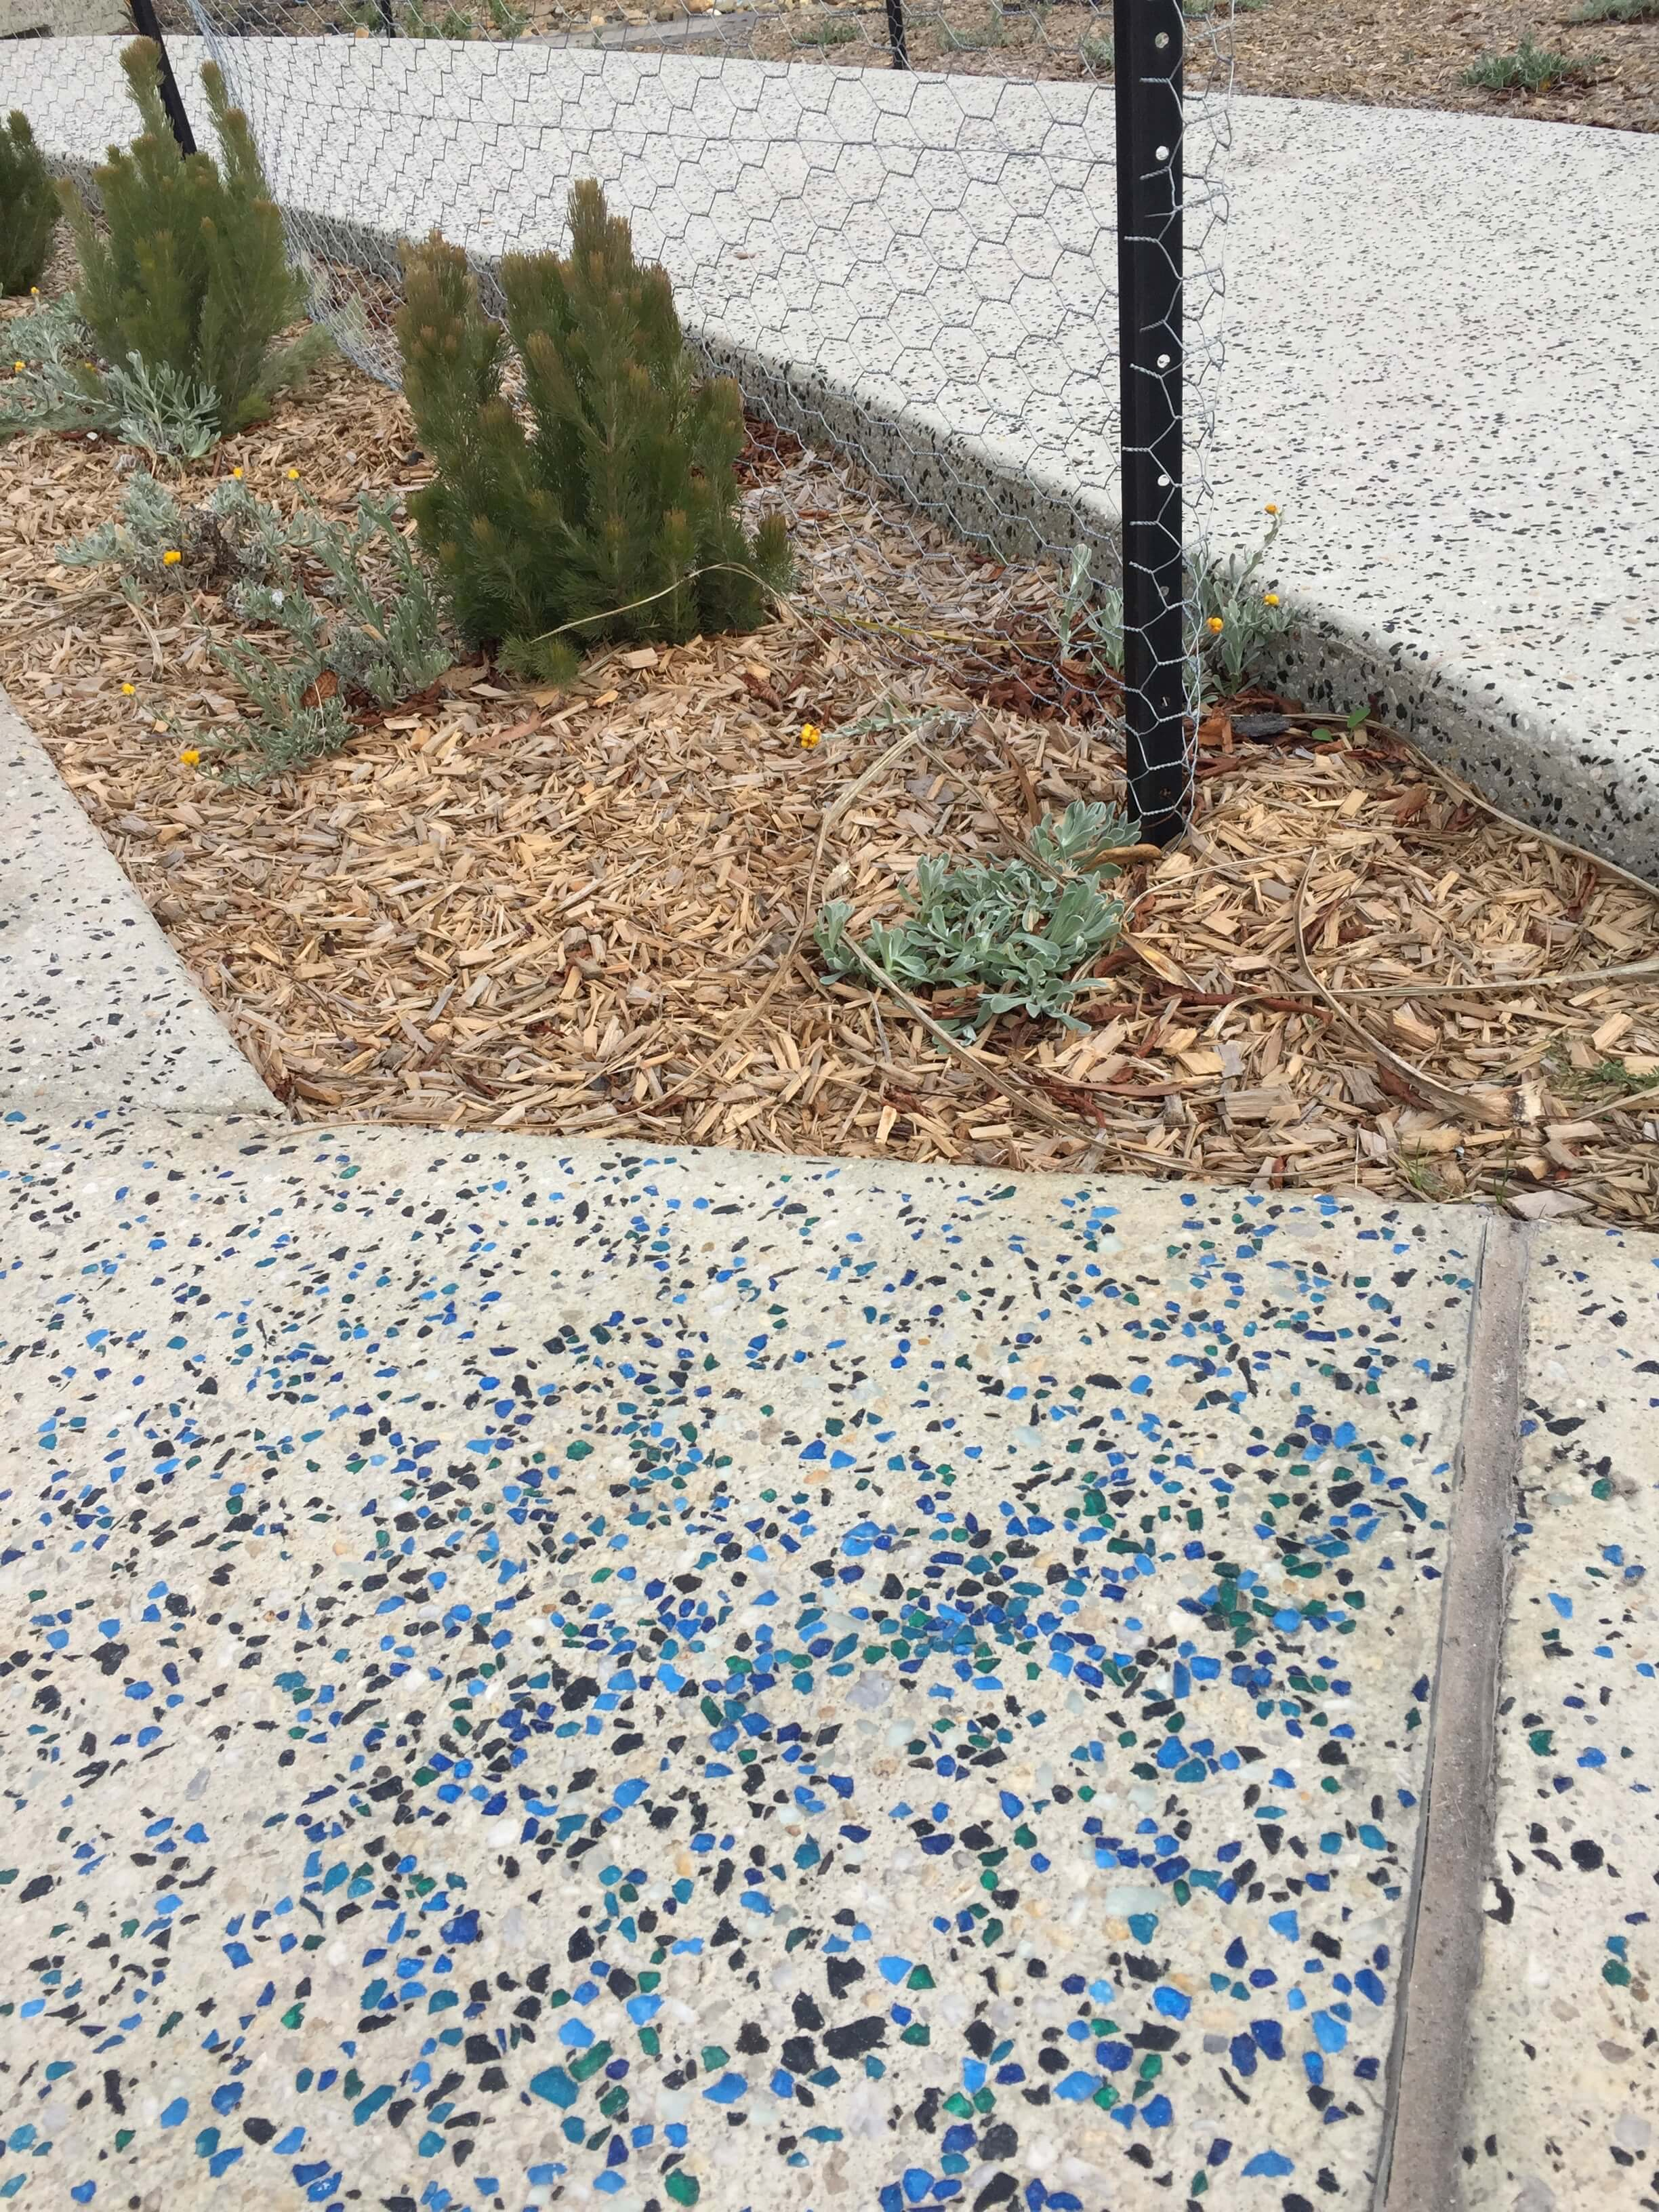 Blue glass in concrete pathway